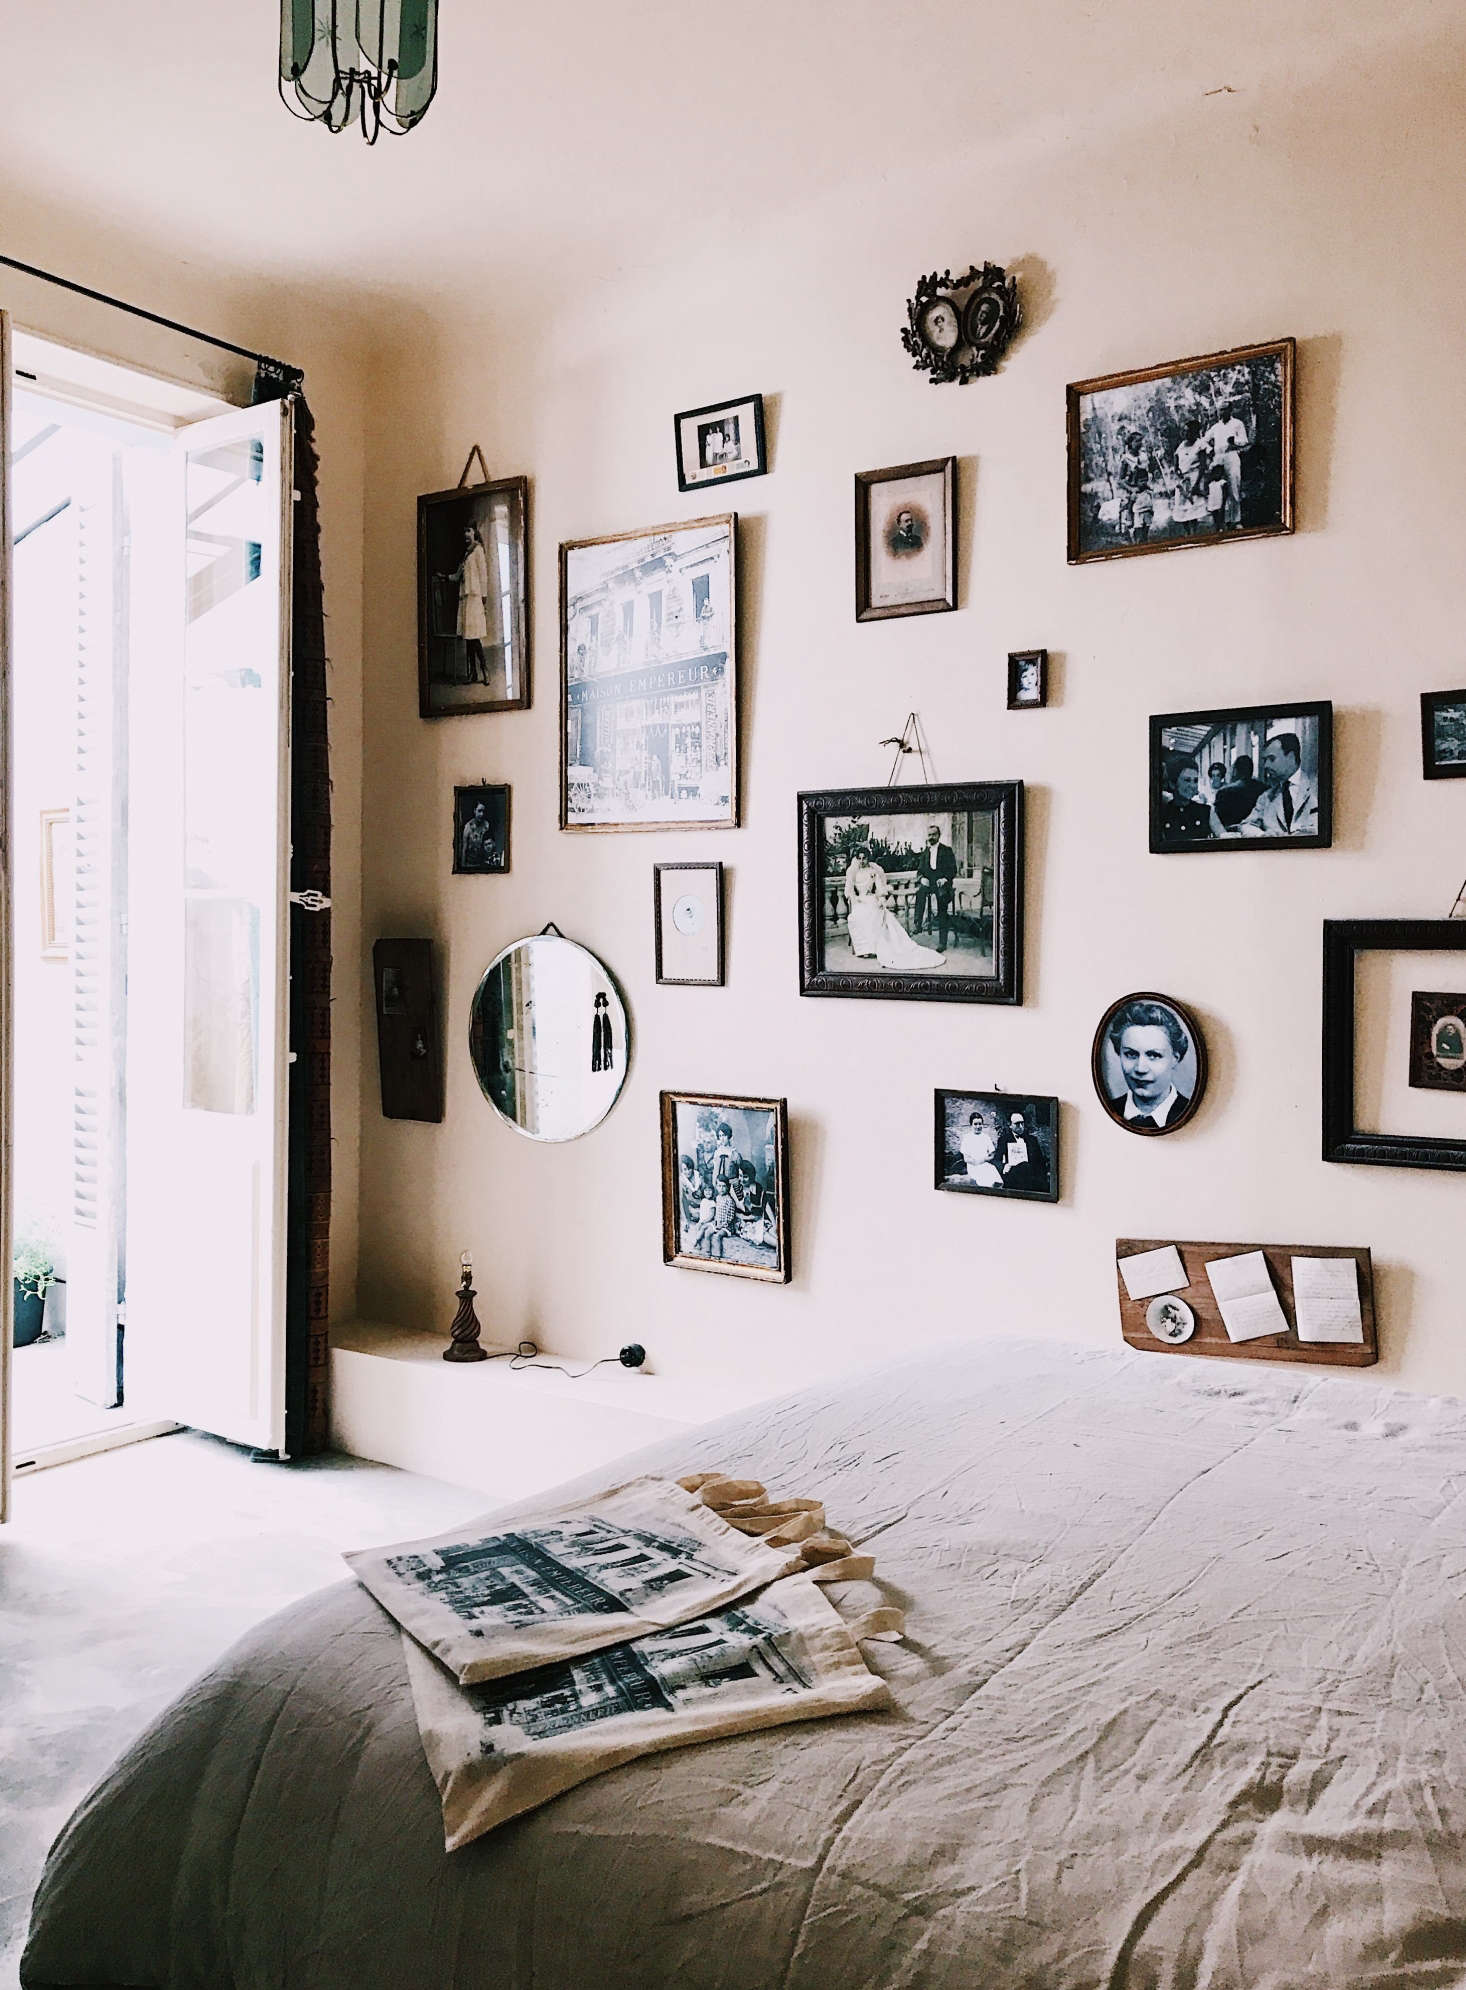 The bedroom has a gallery wall featuring framed historical photographs.